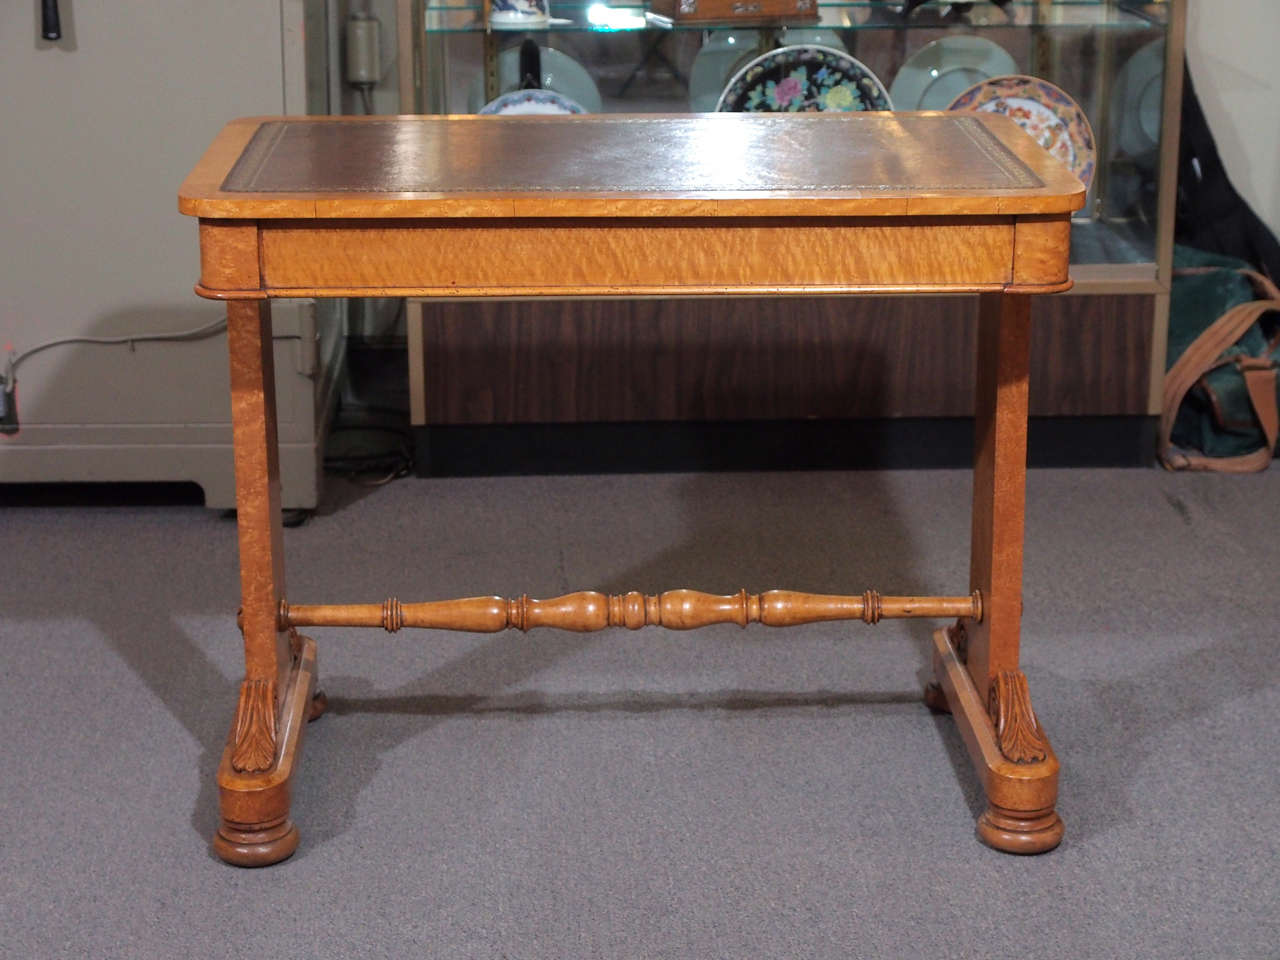 Antique Regency Burl Maple Writing Table For Sale At 1stdibs